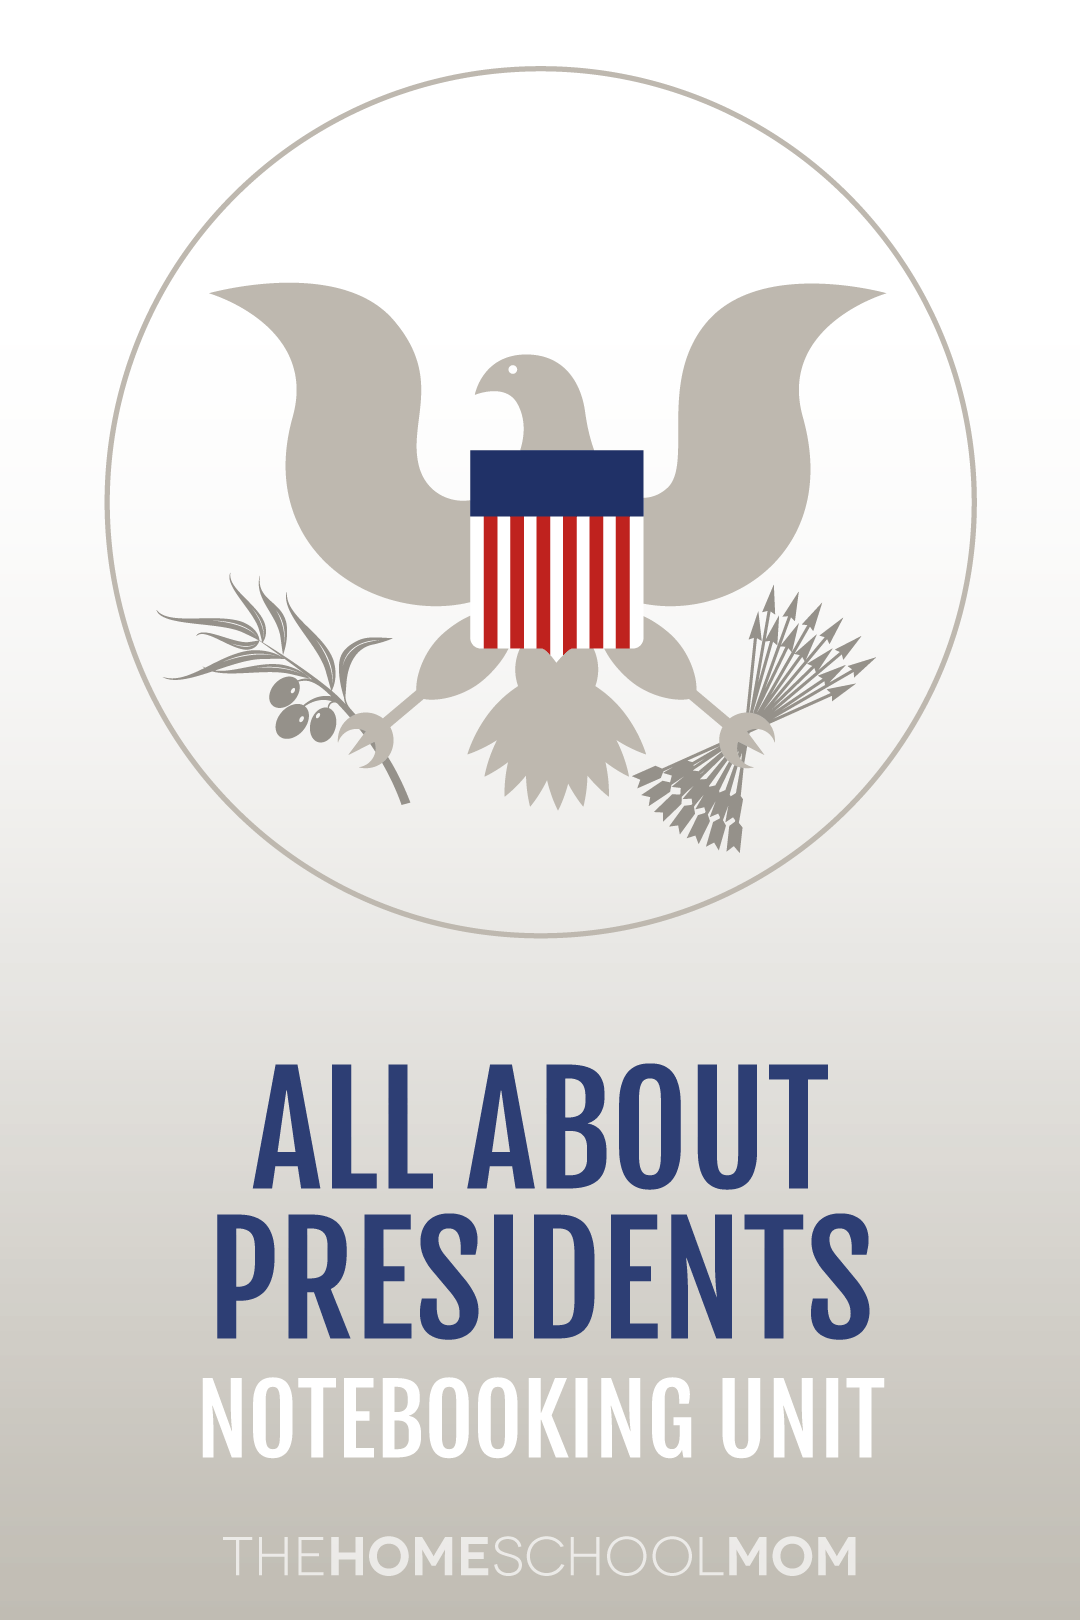 All About Presidents Is A Notebooking Unit That Can Be